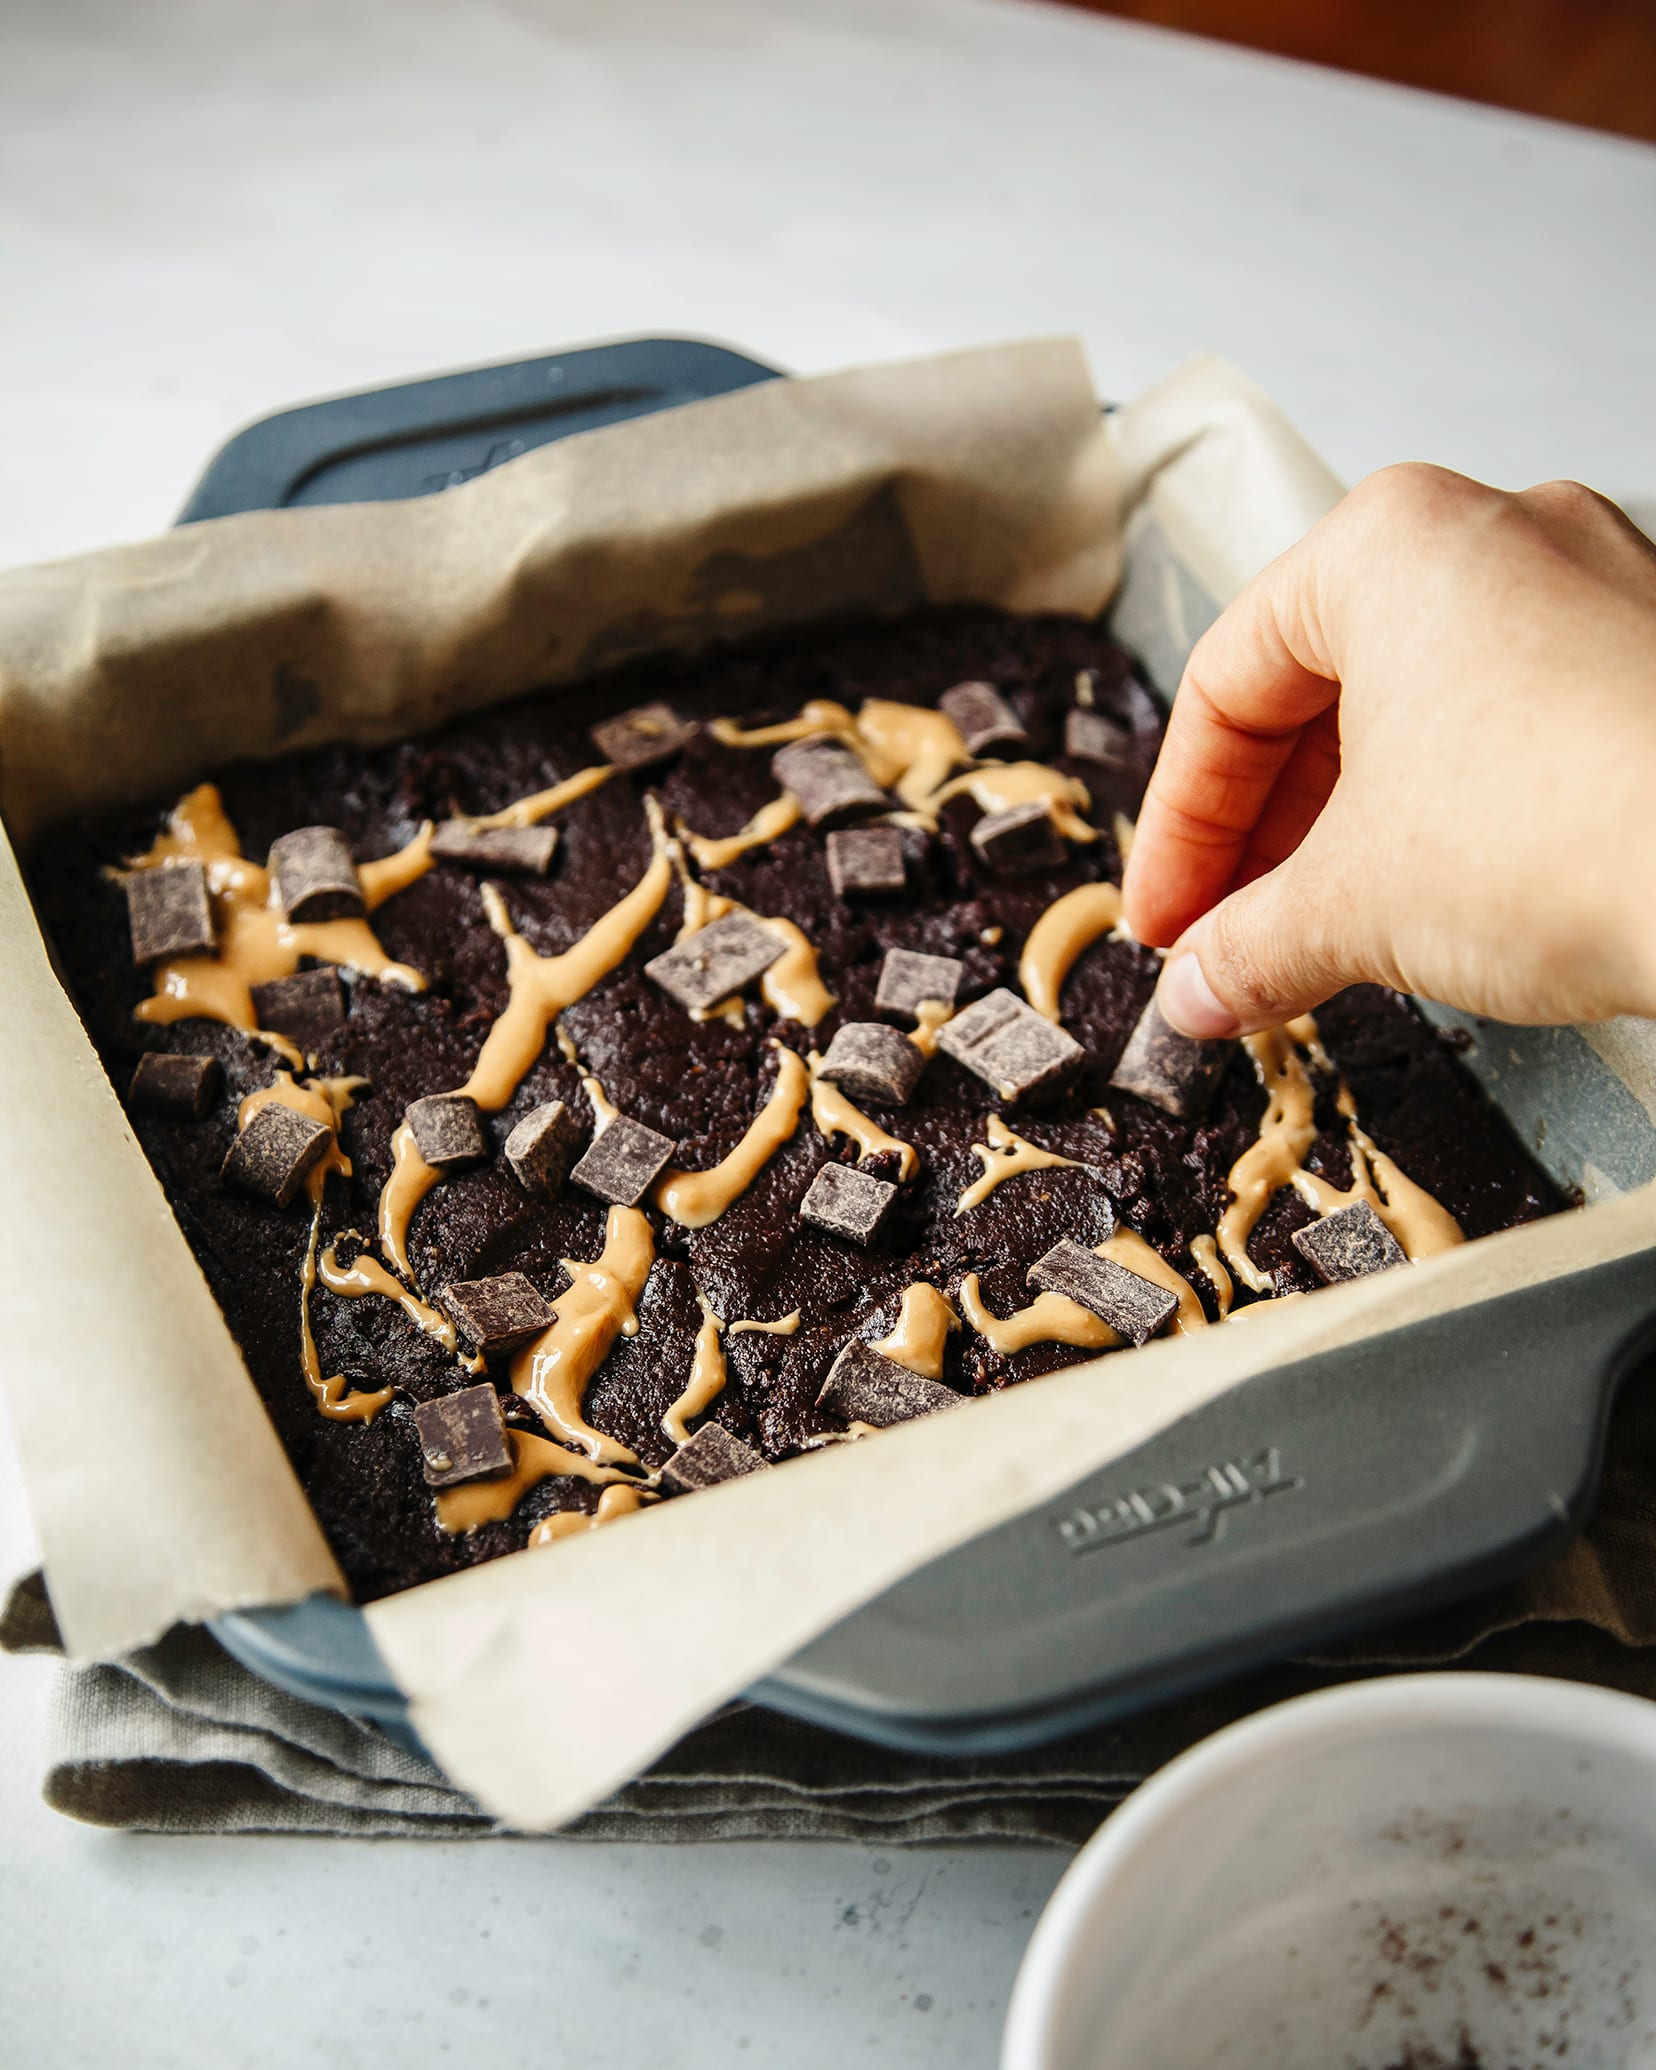 A 3/4 angle shot of a hand placing chocolate chunks on top of a pan of brownies, about to be baked.